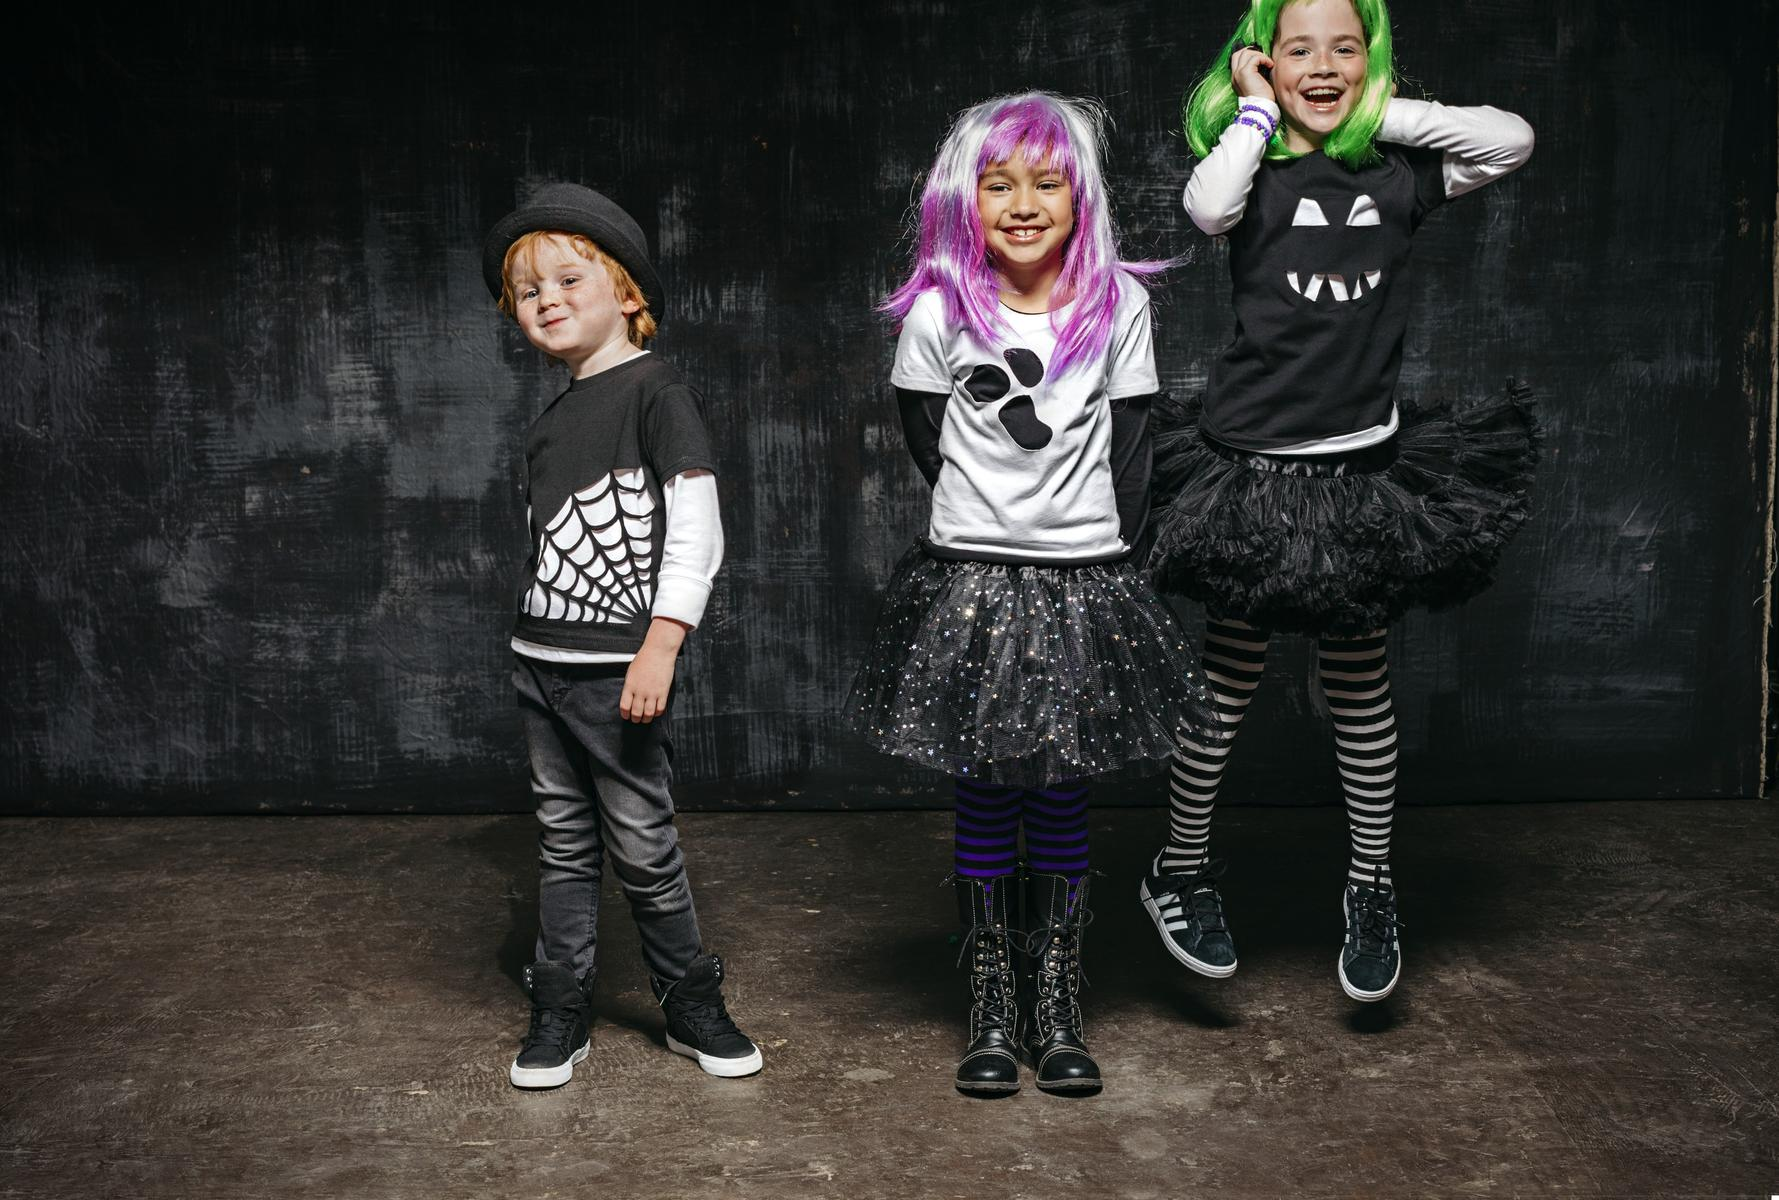 Family Fun's Favorite Last-Minute Halloween Costume Ideas